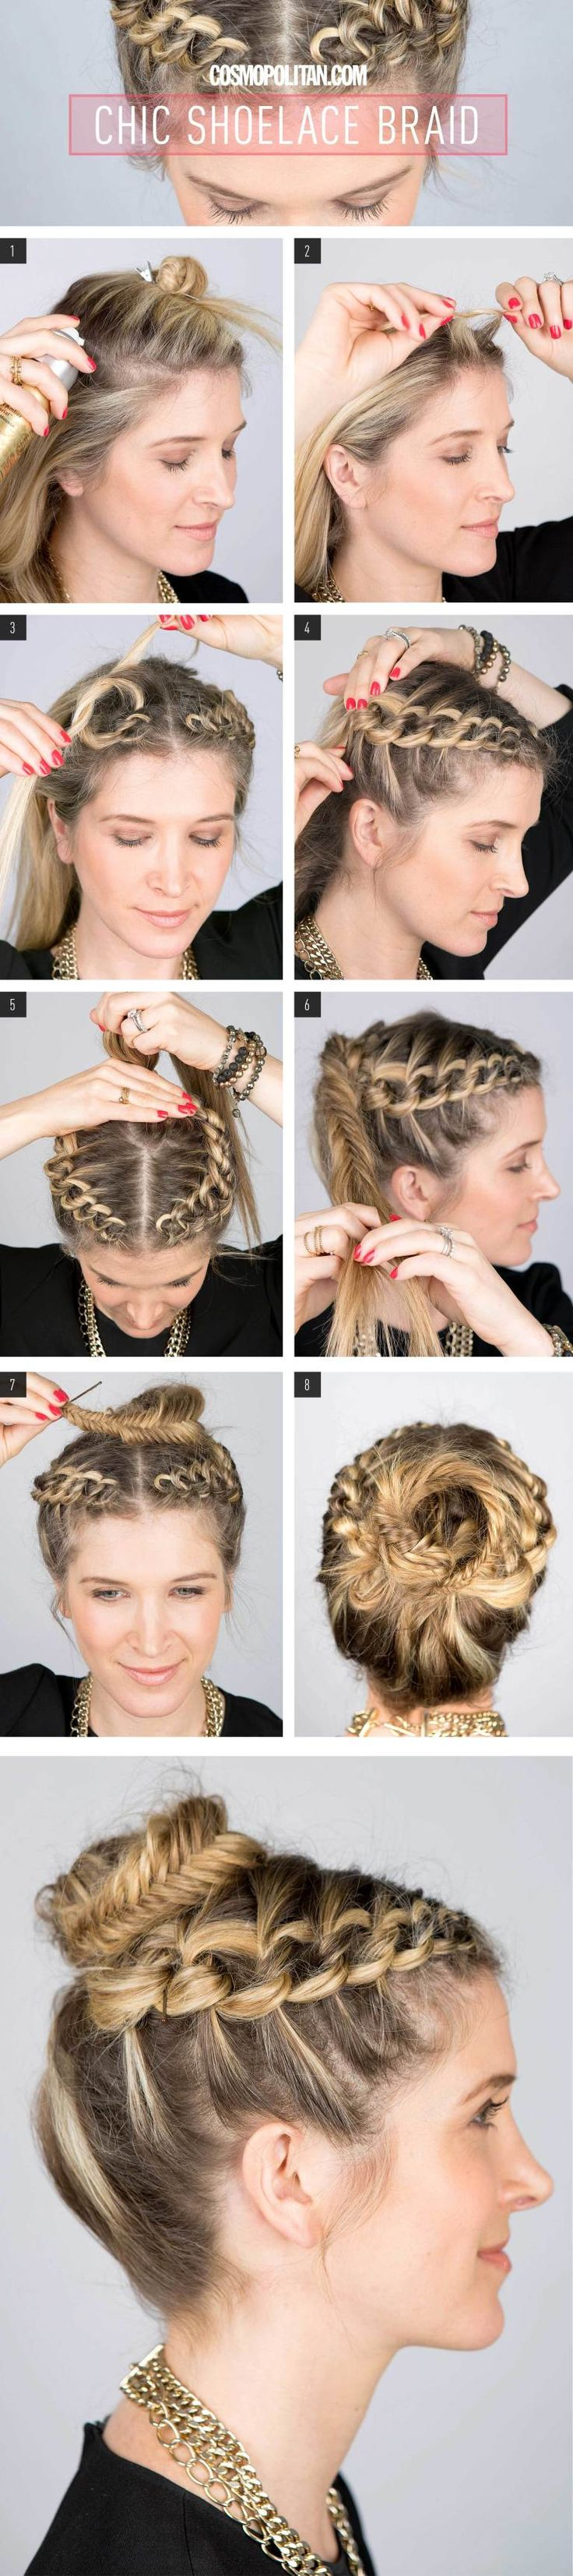 198 best Hair images on Pinterest